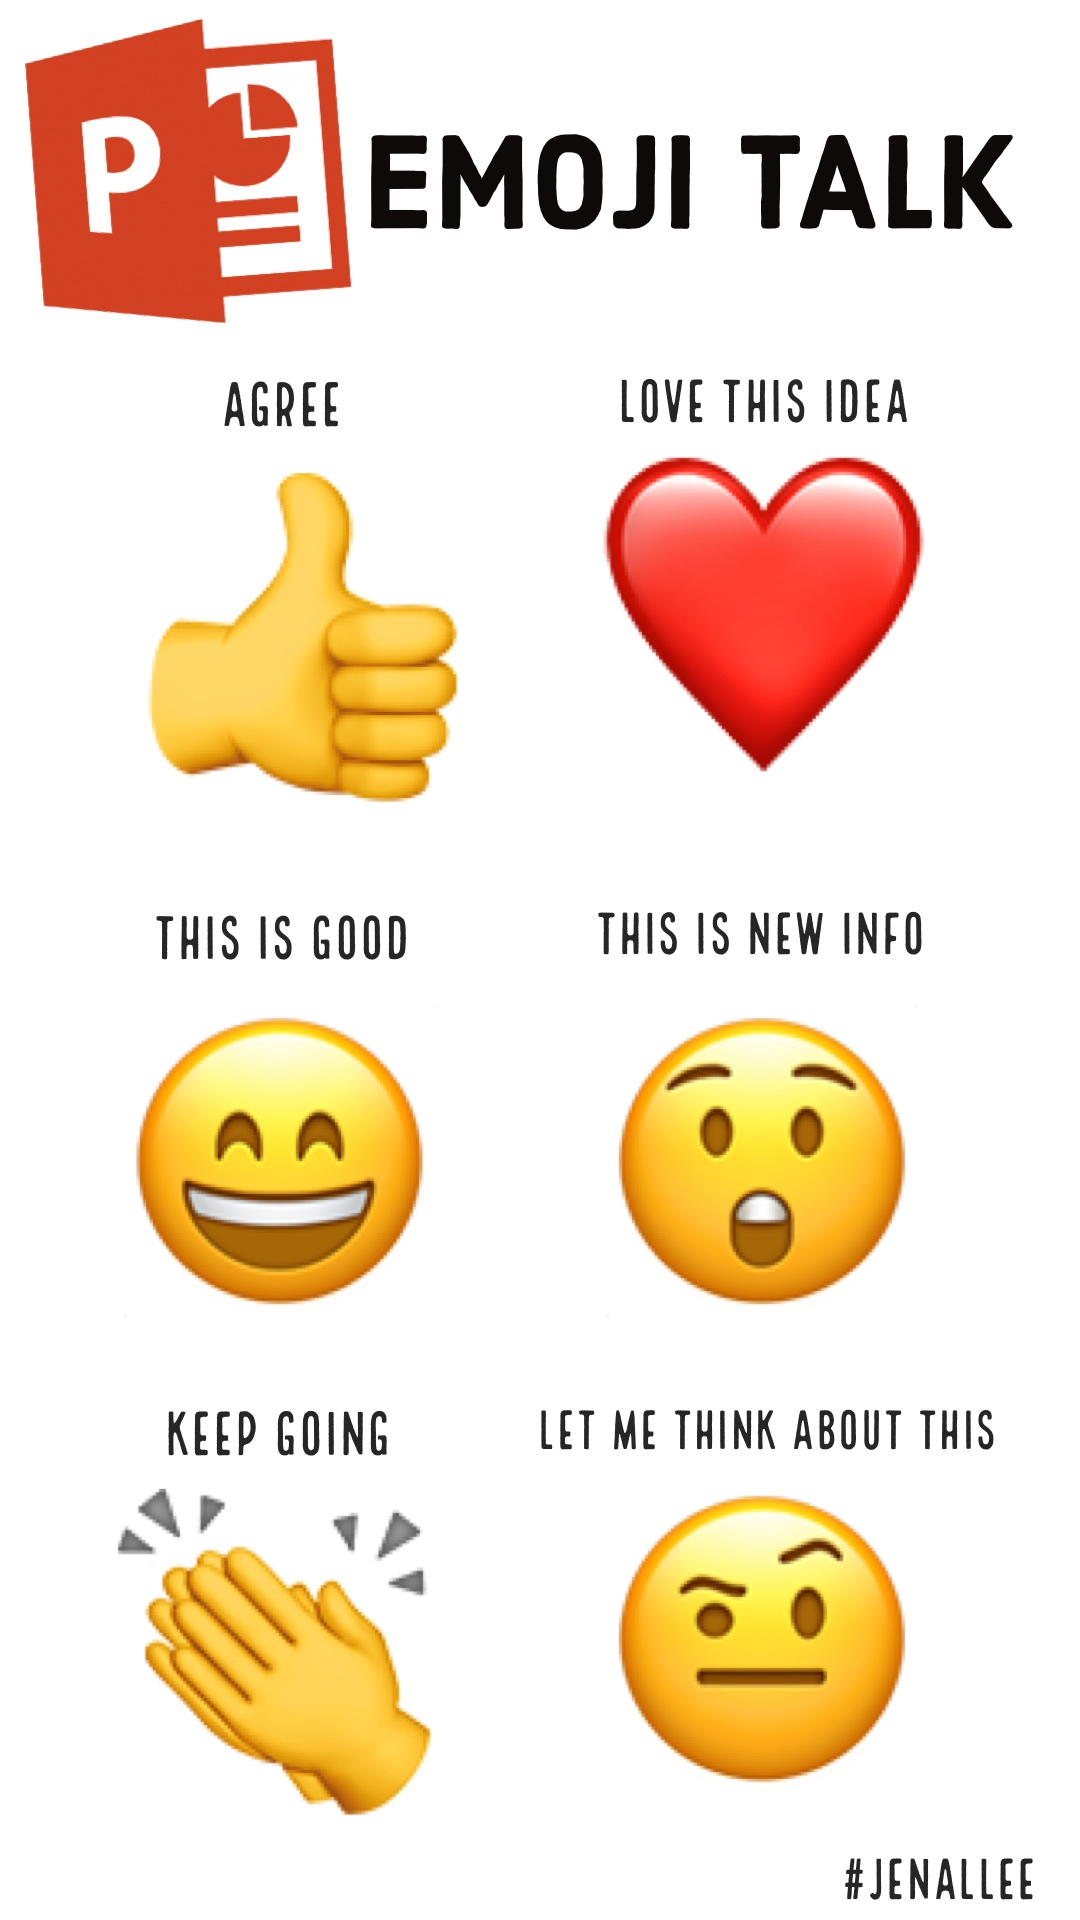 ❤ ❤ 👍 👏 😲 😄 🤨 EMOJI TALK Agree #Jenallee Keep Going This is Good Love This Idea This is New Info Let Me Think About This